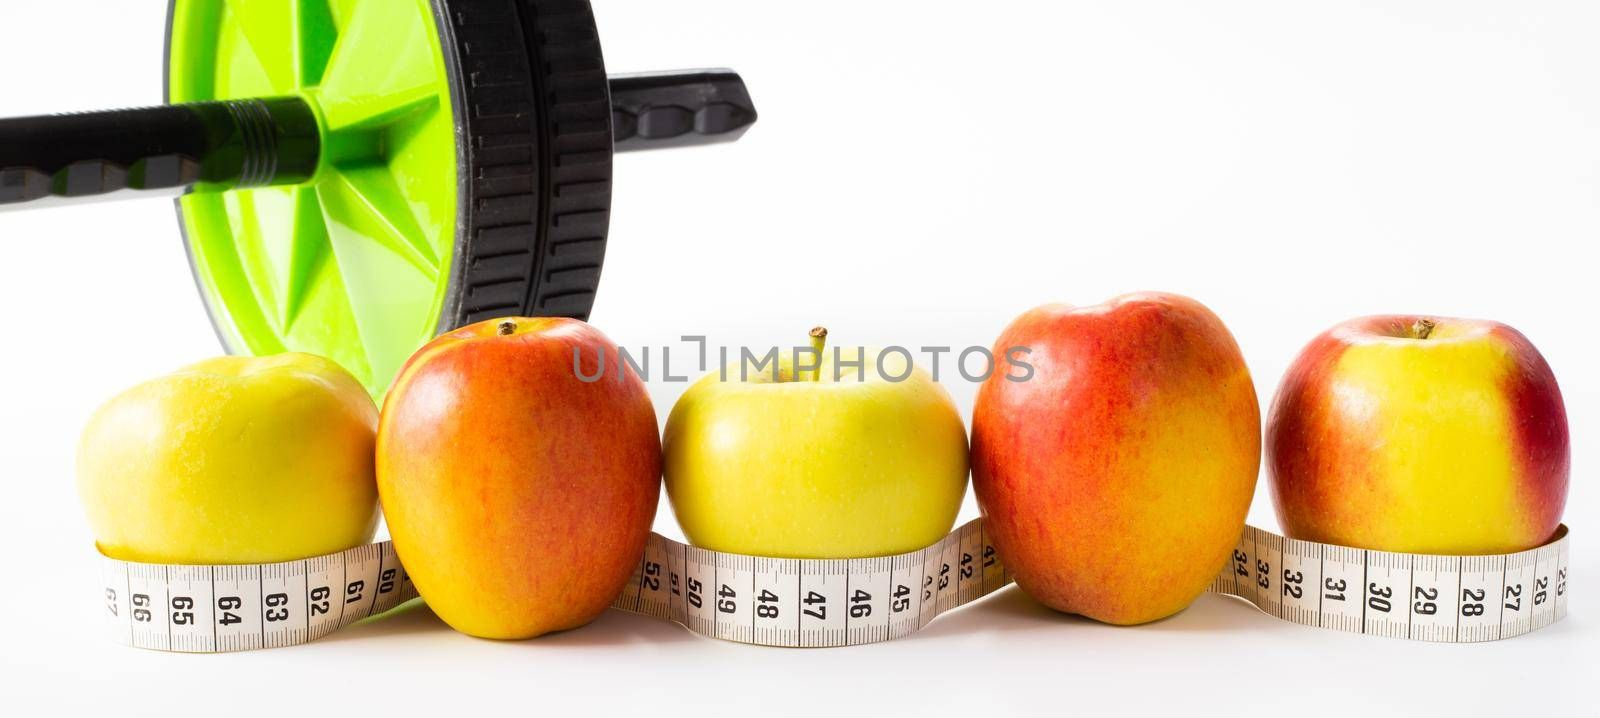 Healthy lifestyle, fitness, fruits, sport, athlete's equipment on white background. Copy space.